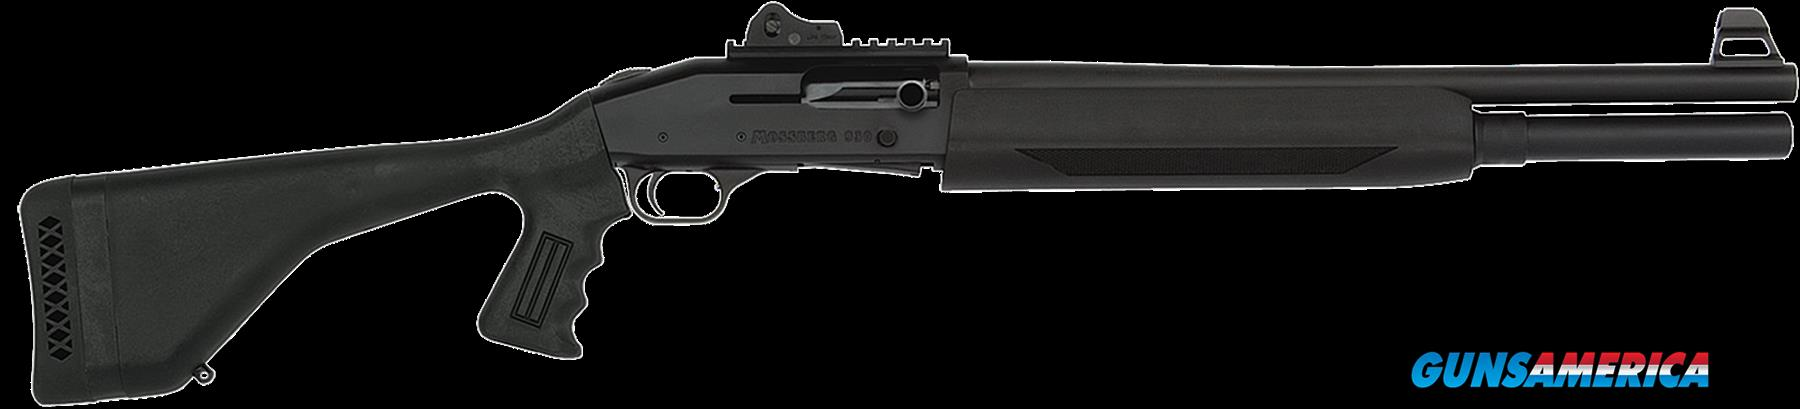 "Mossberg 85370 930 Semi-Automatic 12 Gauge 18.5"" 3"" 7+1 Synthetic w/Pistol Grip Blk Matte Blued  Guns > Shotguns > Mossberg Shotguns > Autoloaders"